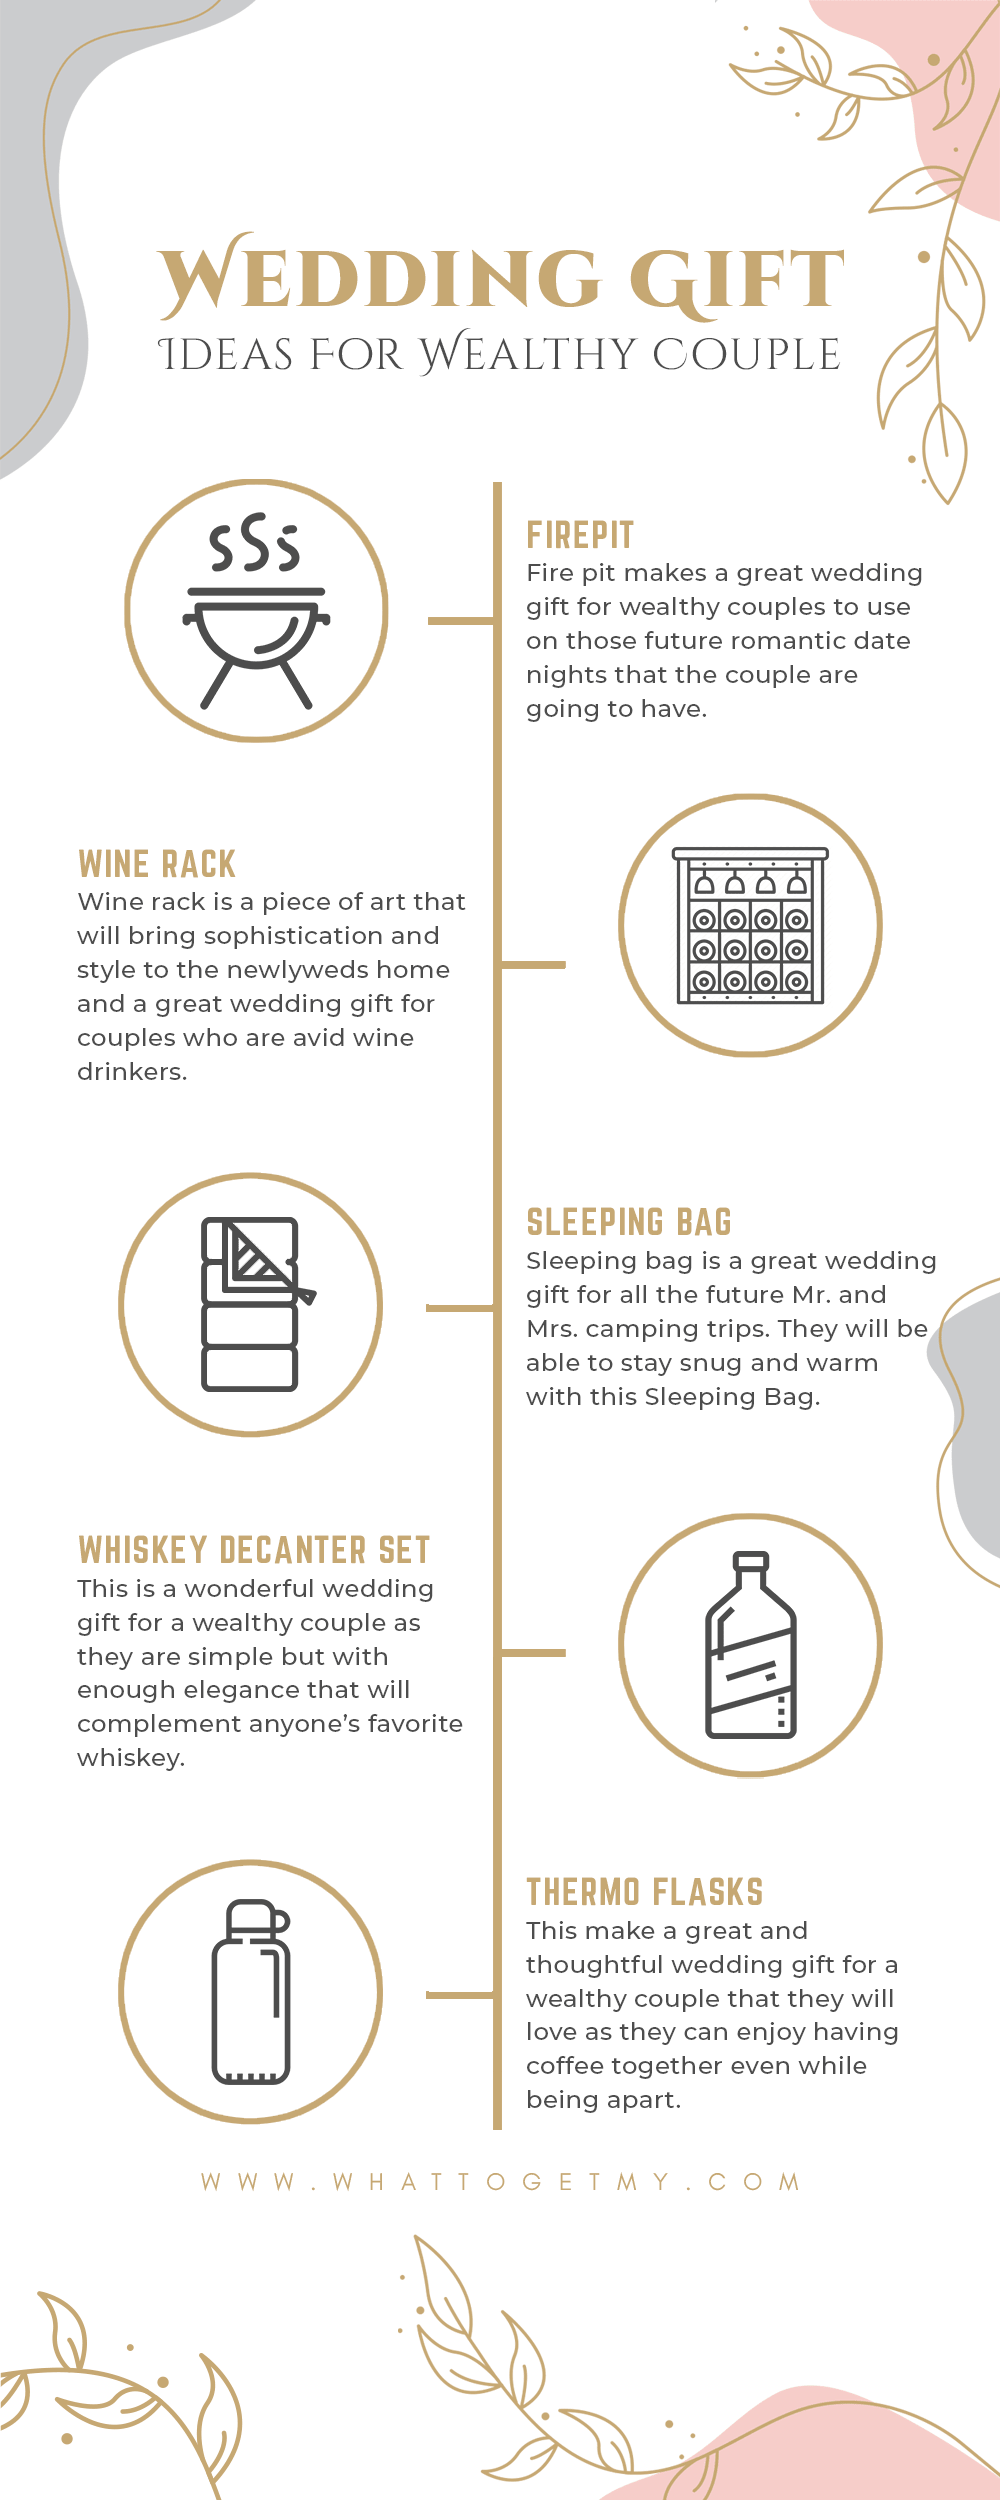 Infographic WEDDING GIFT IDEAS FOR WEALTHY COUPLE-min